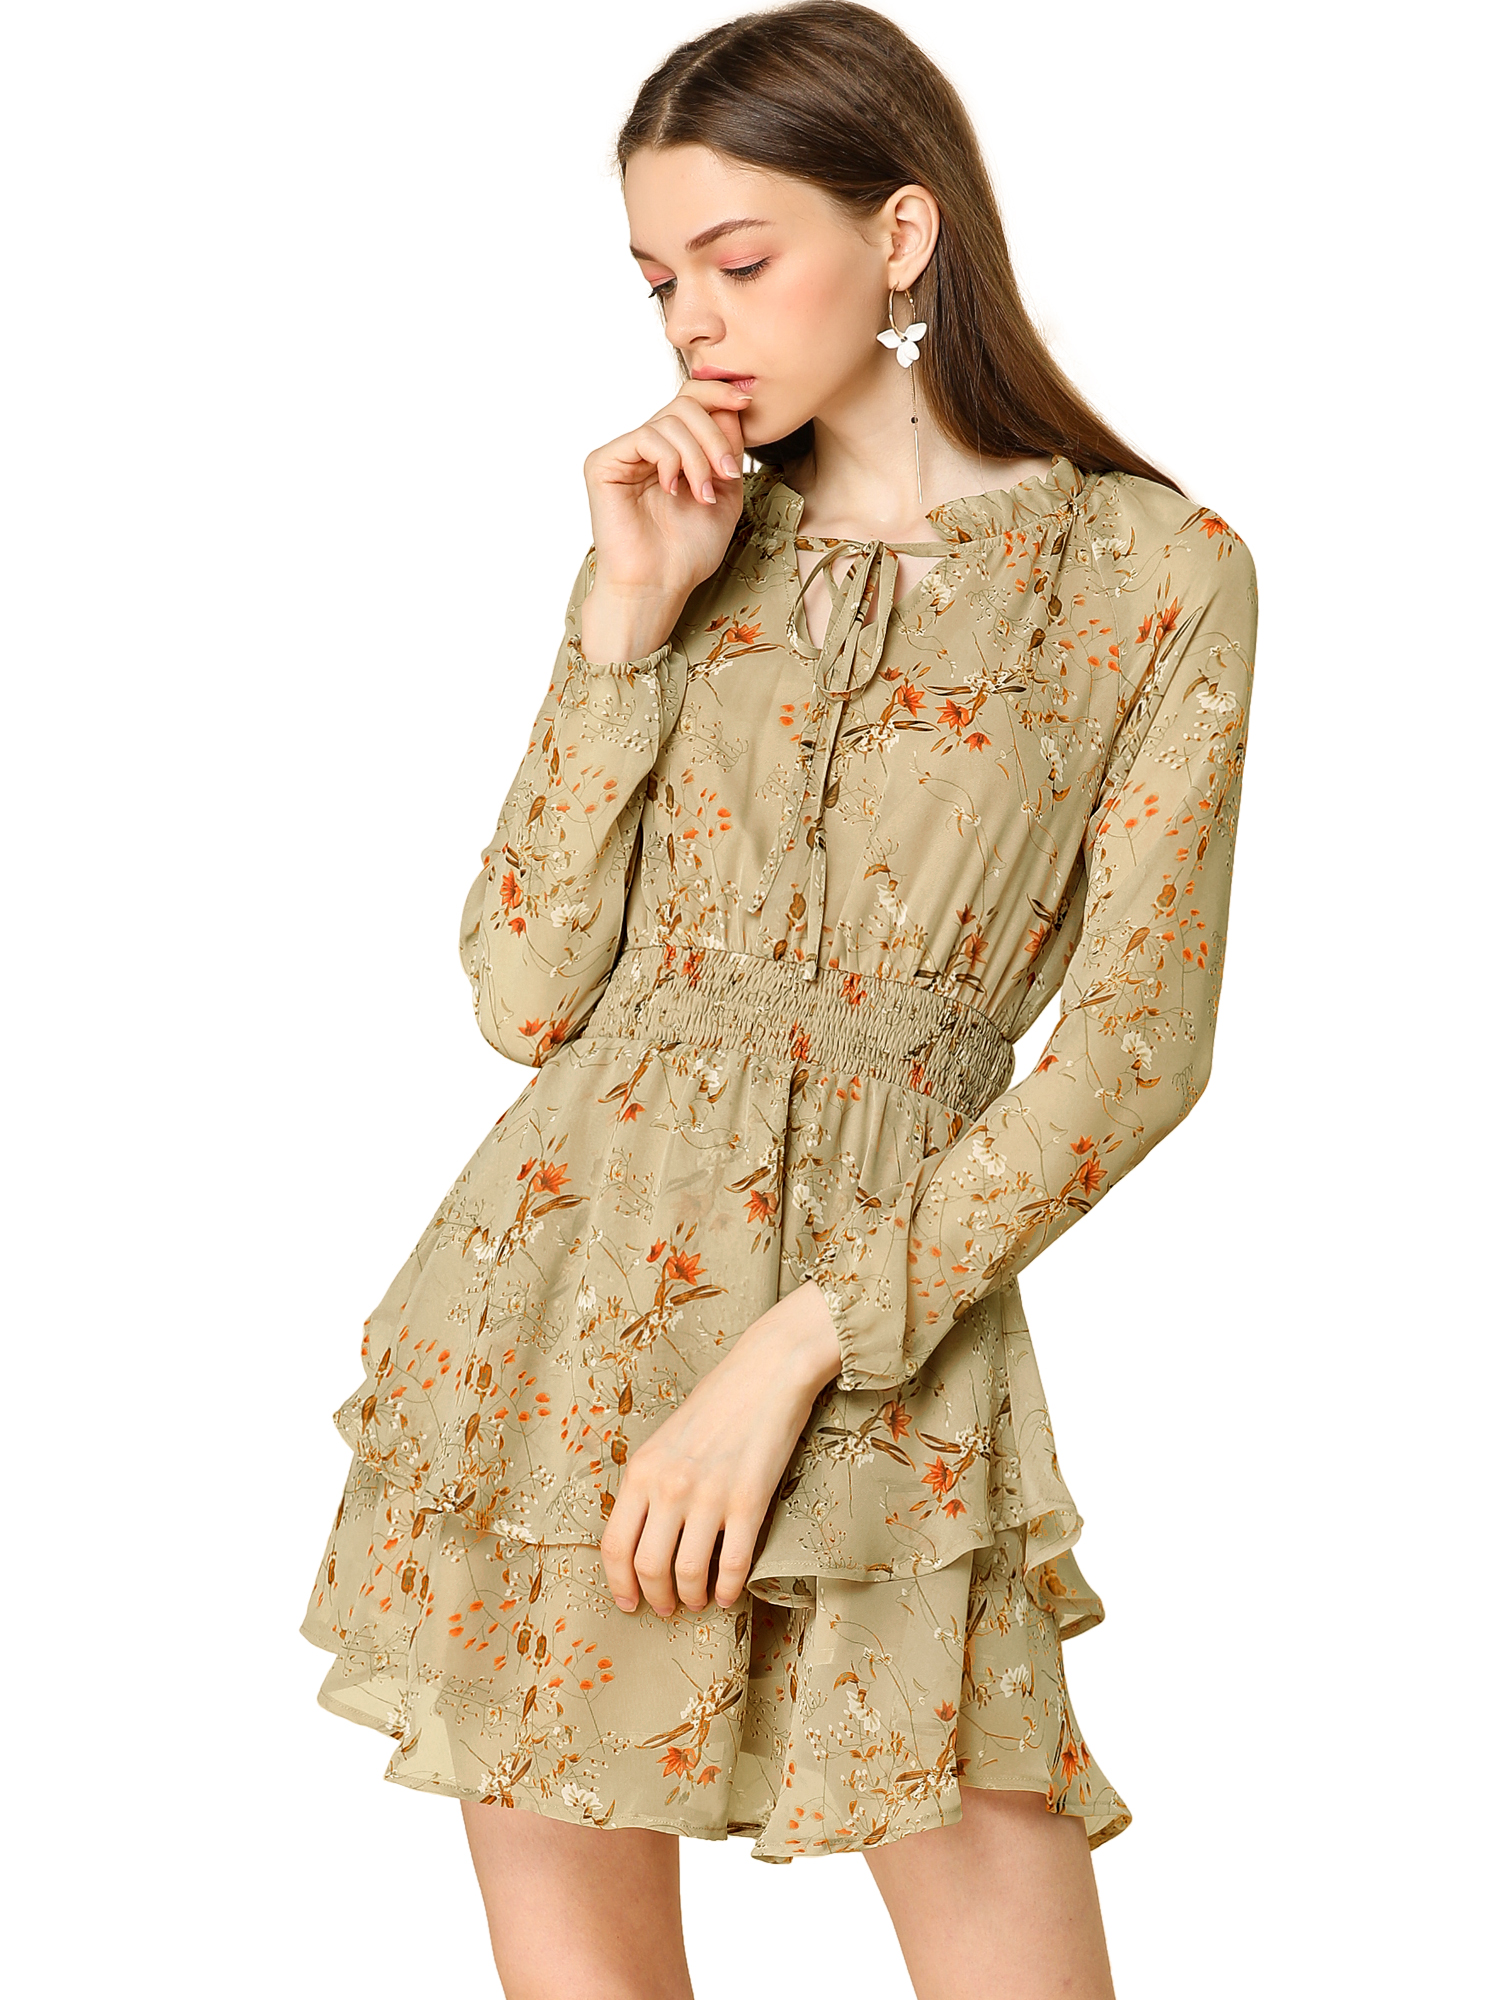 Allegra K Women's Floral Smocked Waist Chiffon Dress Khaki L